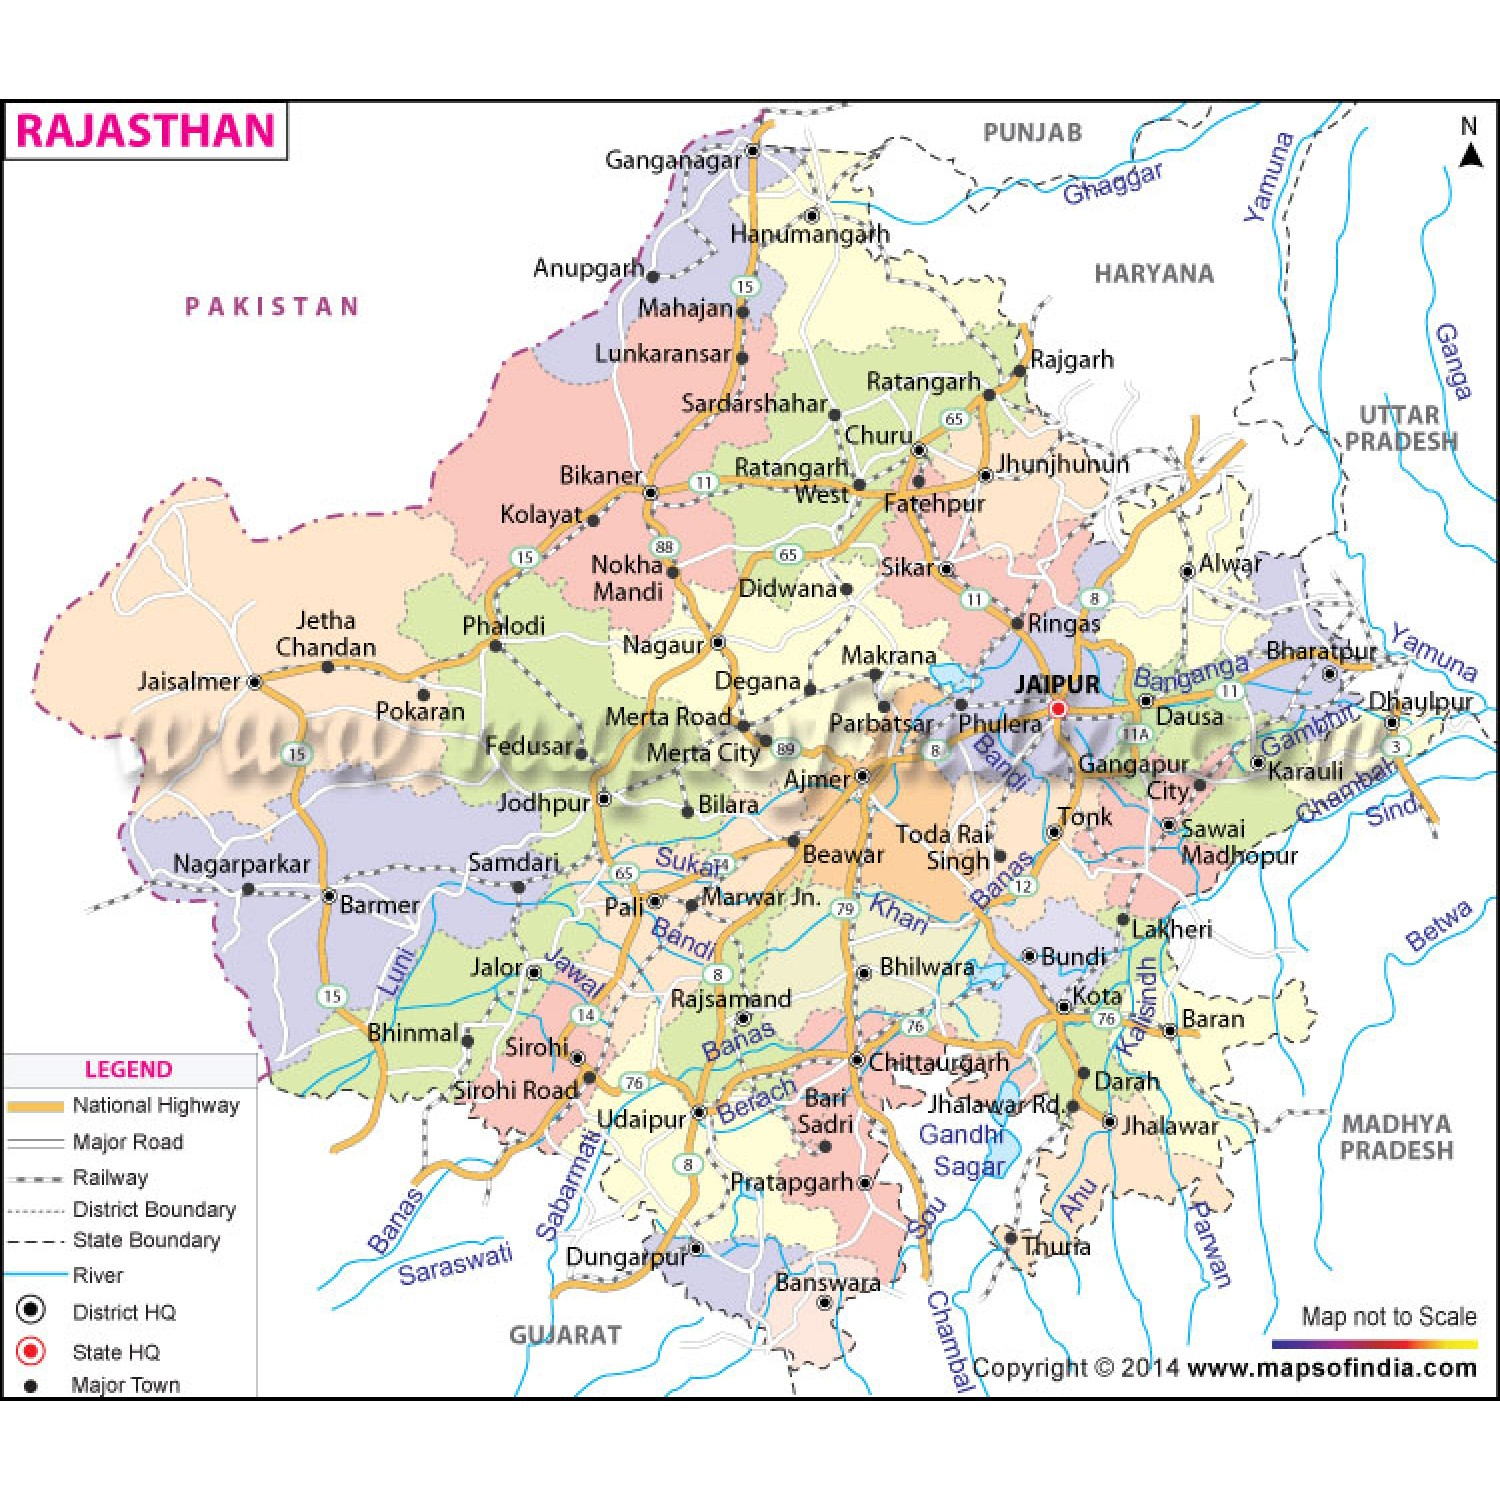 Rajasthan river map in hindi pdf il diavolo custode libro pdf mac os x 10 5 0 leopard download brown angels and demons pdf windows phone 7 activation codes top notch fundamentals 3rd edition mi primer amor gumiabroncs Image collections